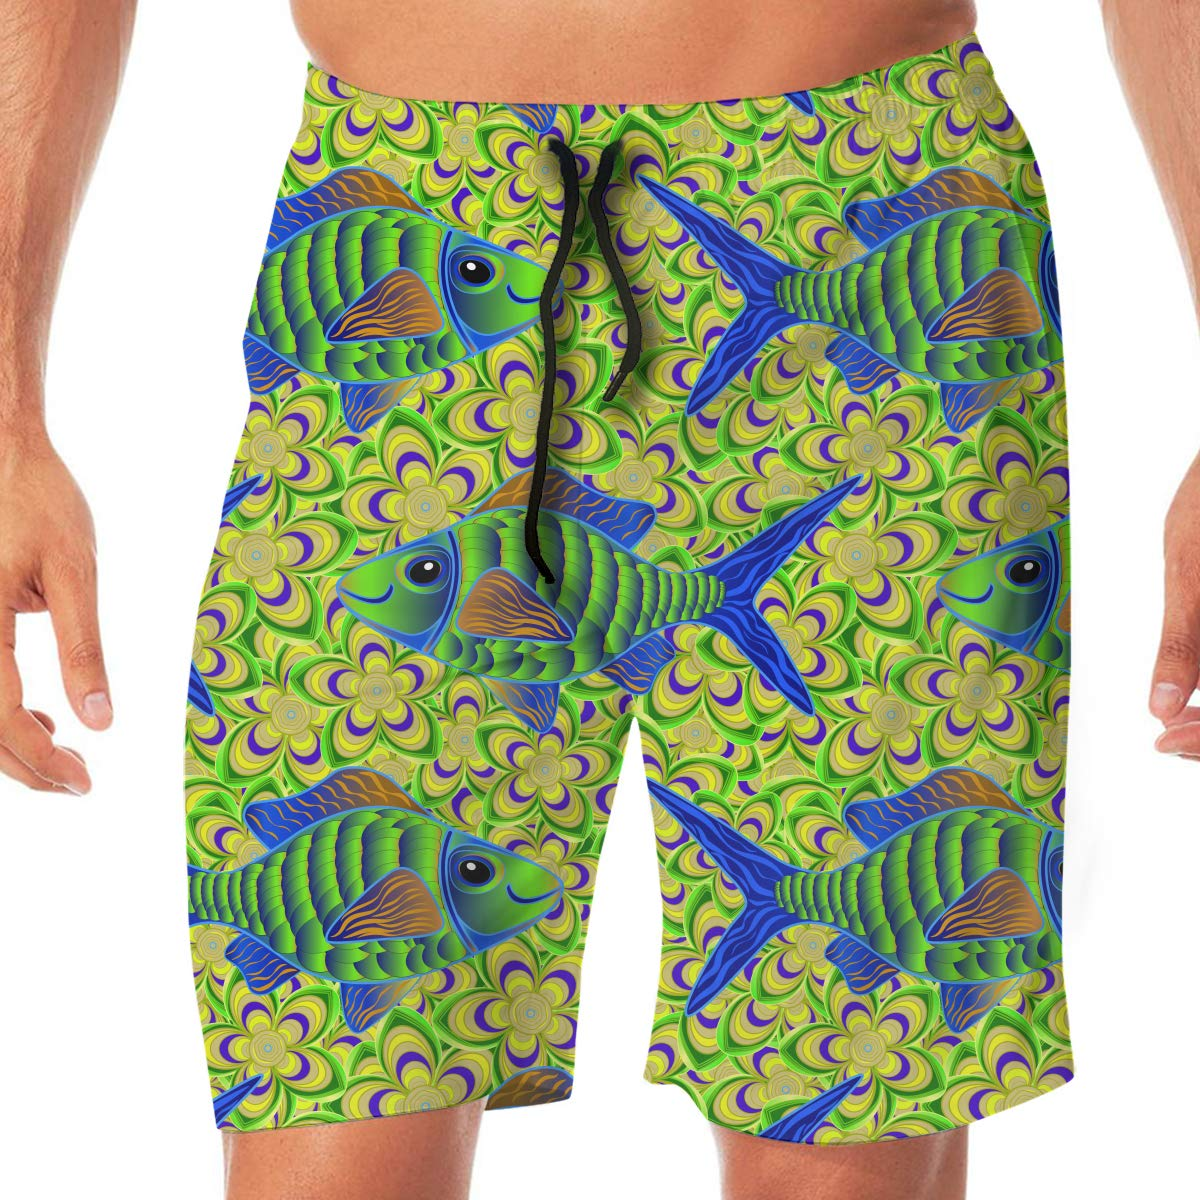 Flying XIE Colorful Fish Swimming Mens Popular Beach Shorts Surf Board Holiday Swim Trunks